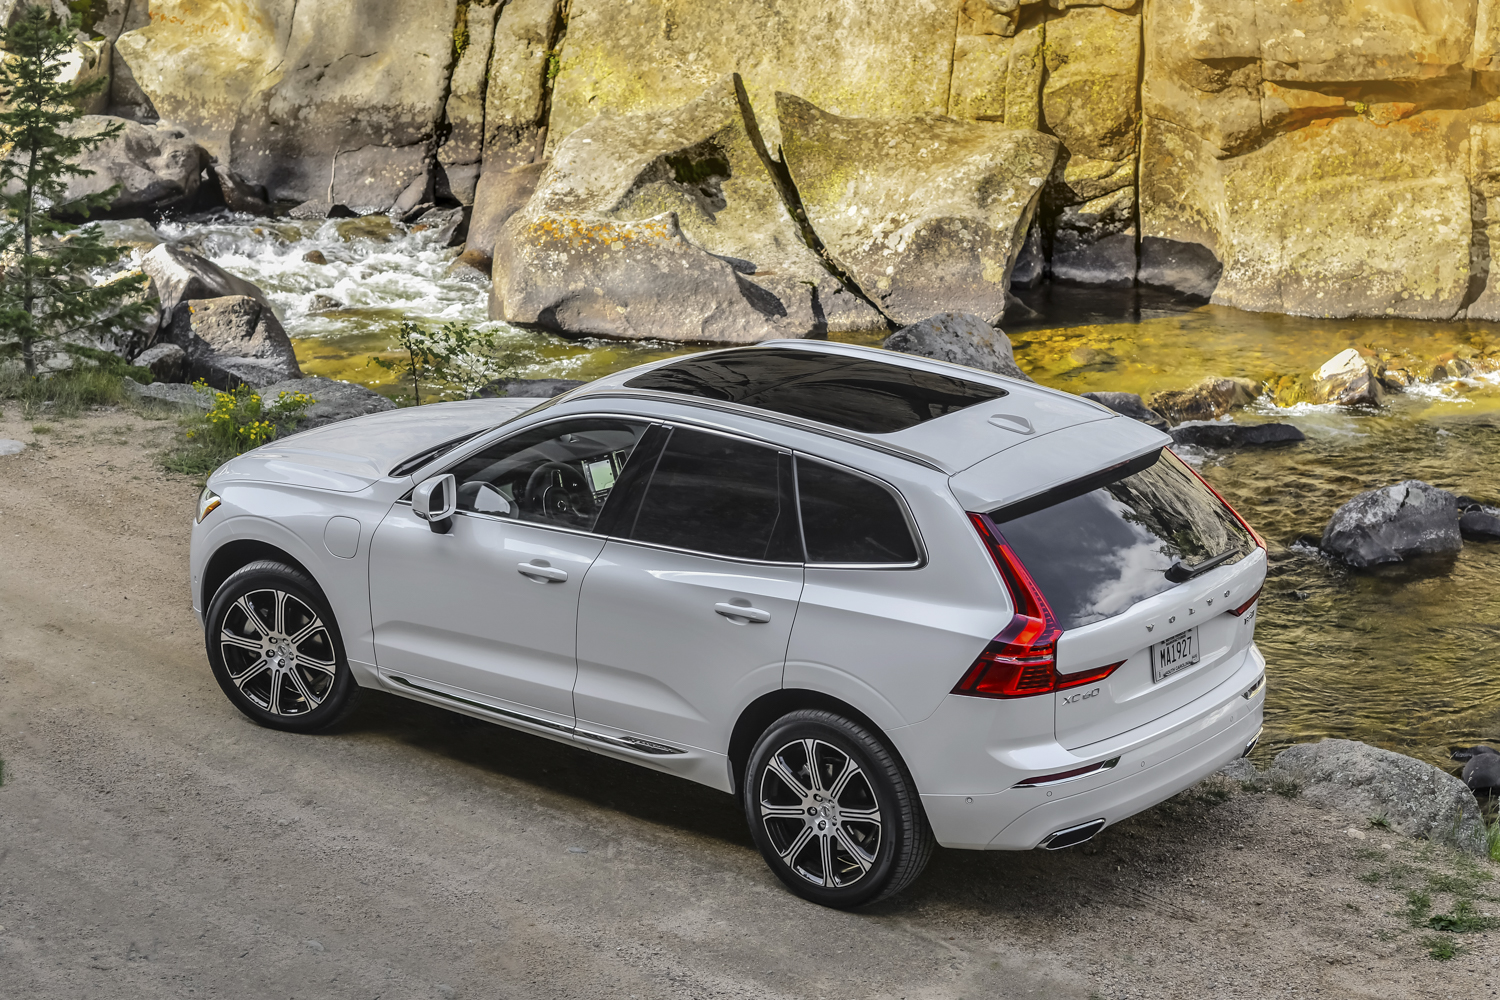 2018 Volvo XC60 T8 First Drive Review | Digital Trends | autoz